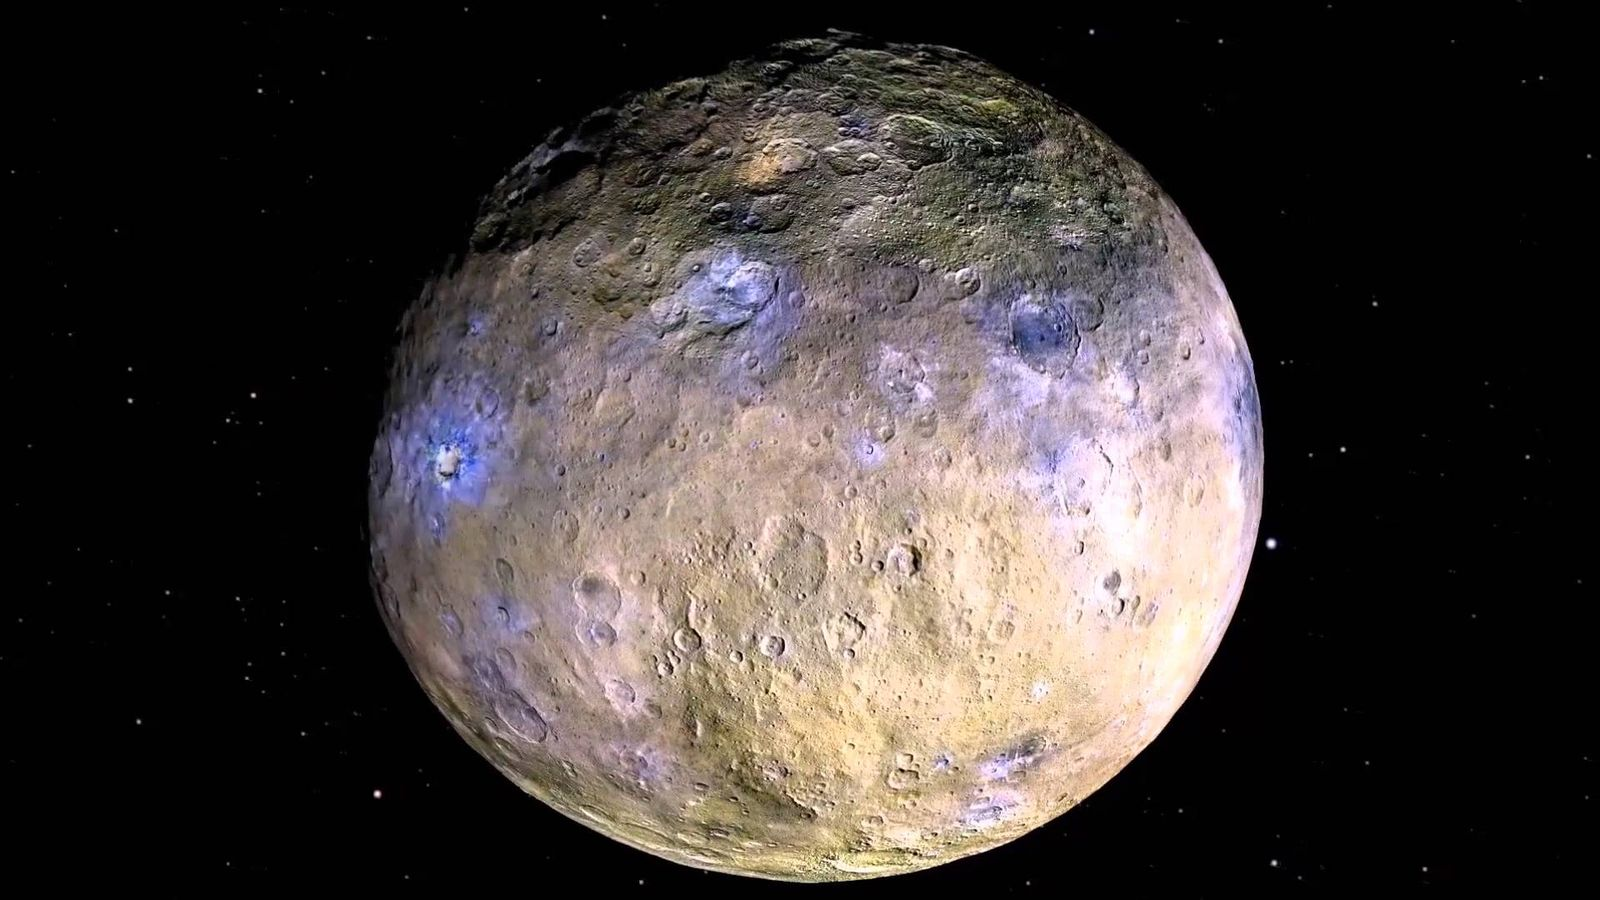 Why are Moons, Planets are round, whereas it is not same for asteroids?